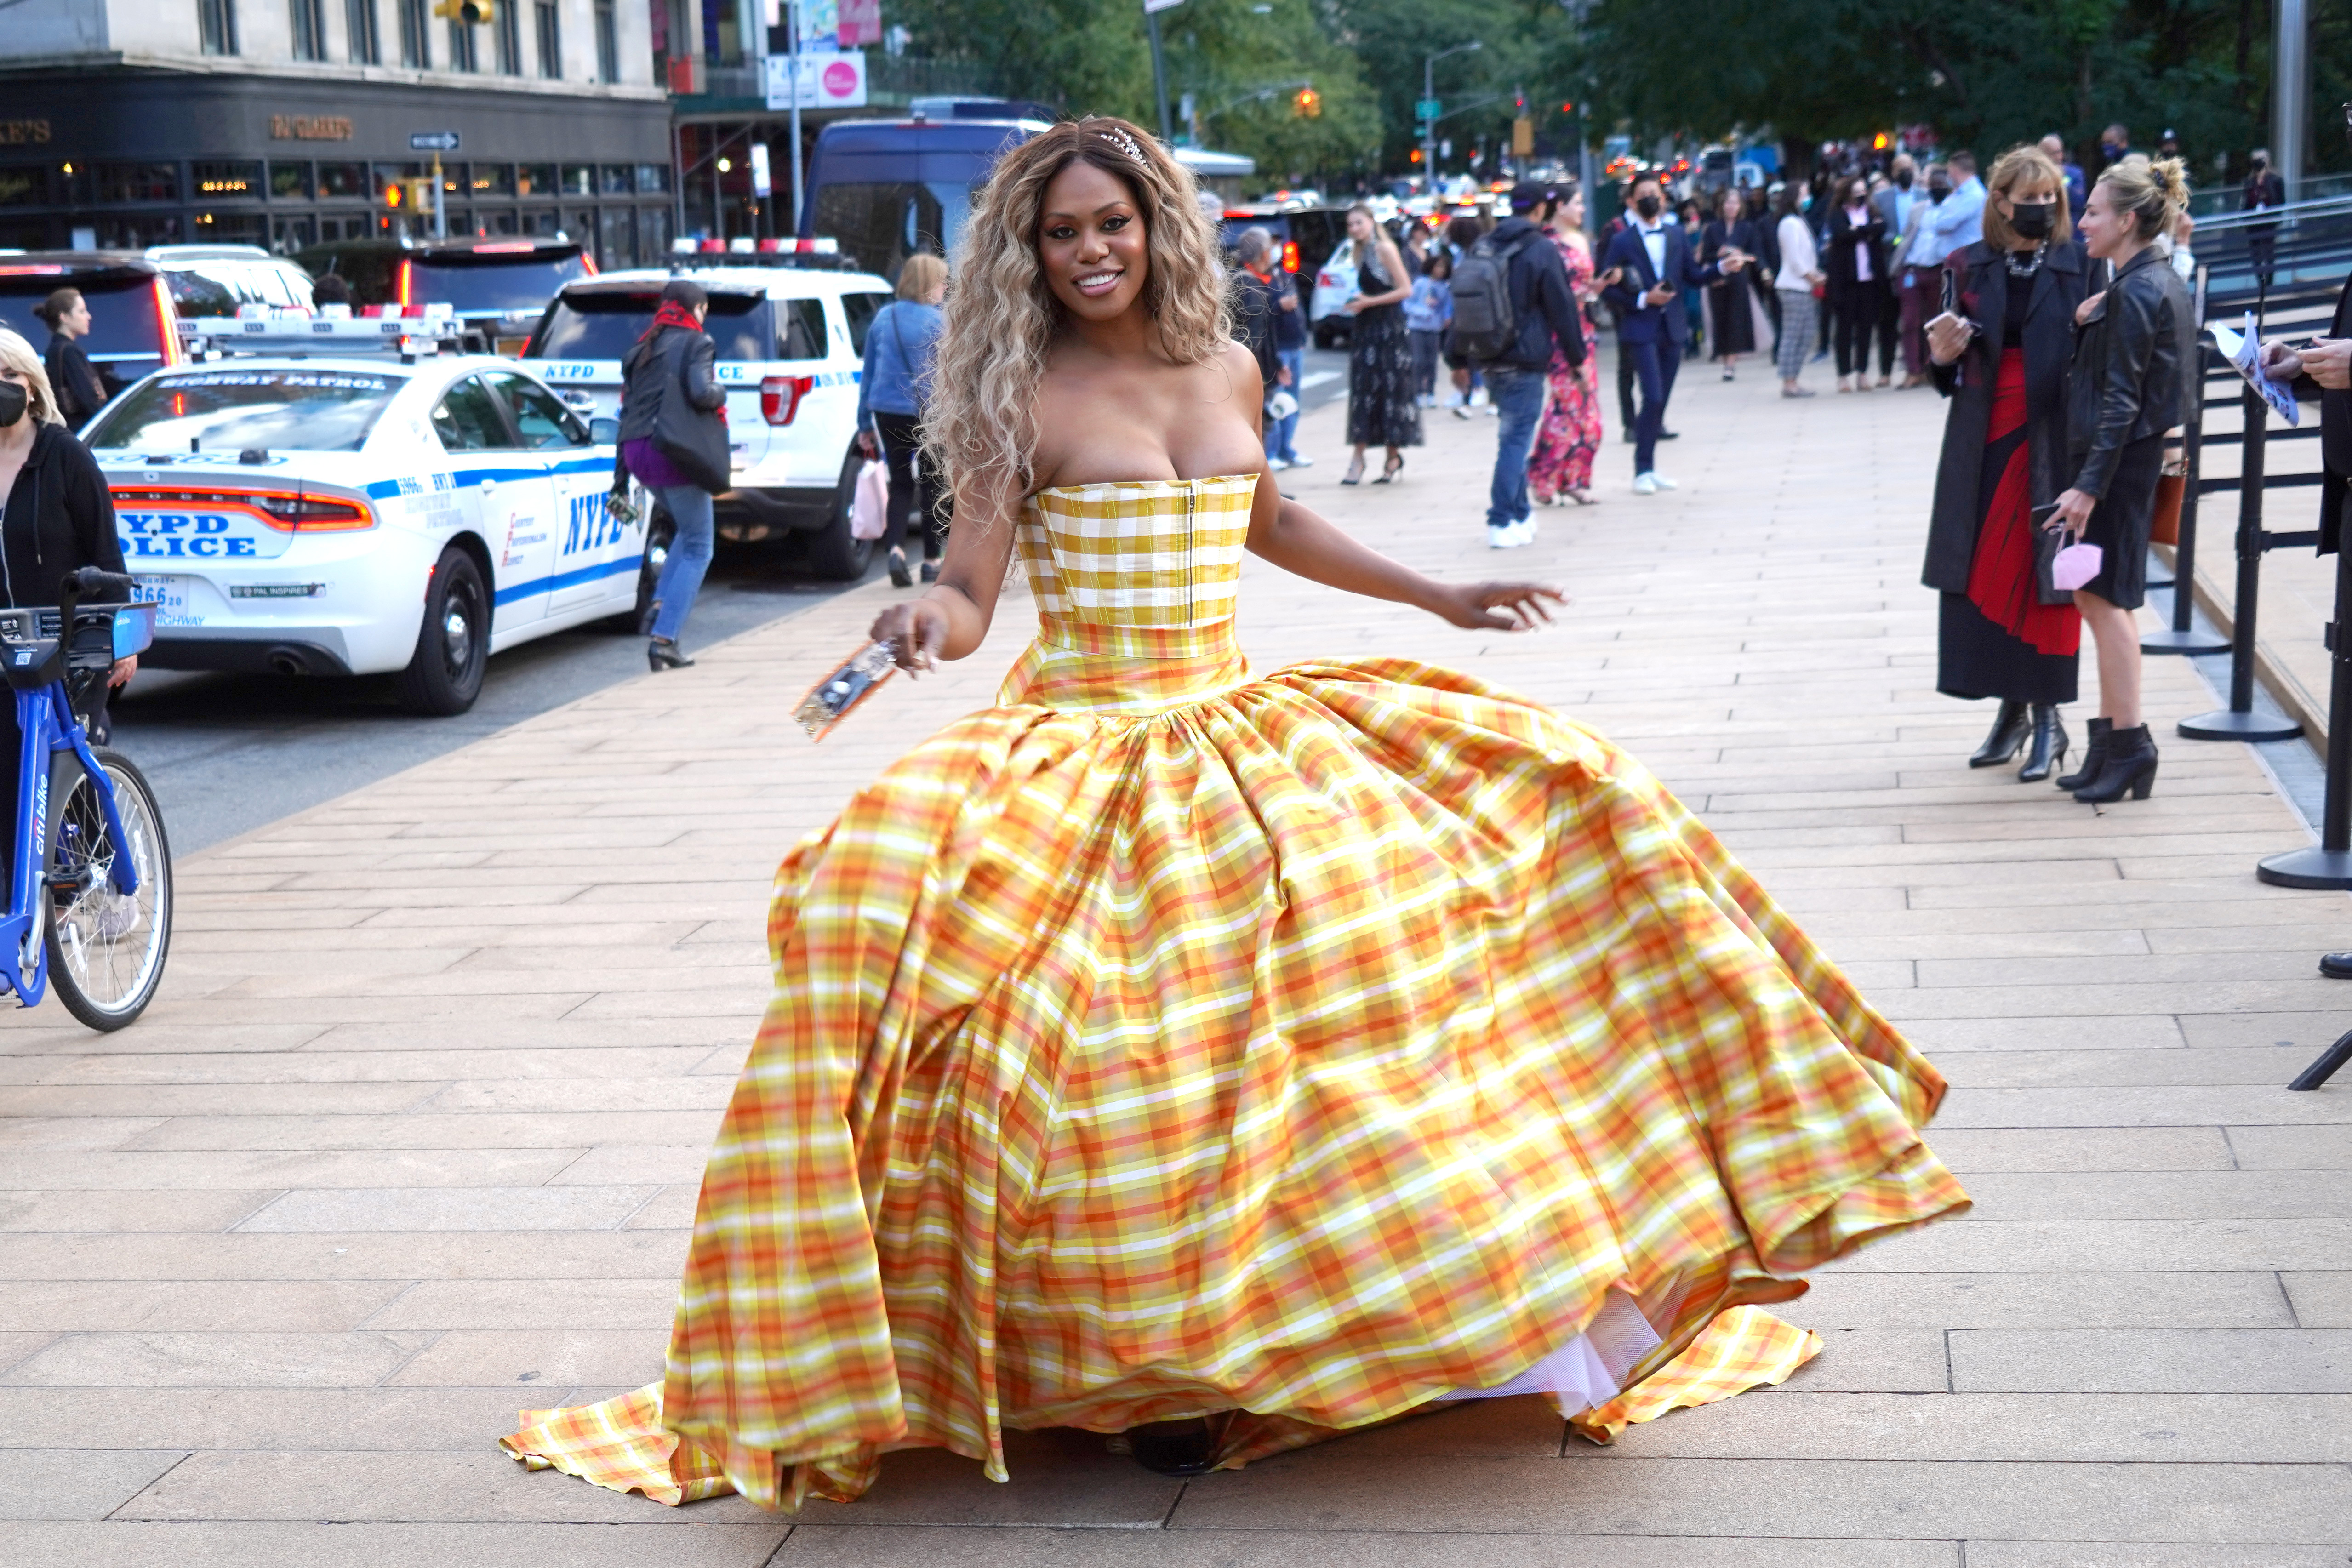 September 30, 2021, New York City, New York, USA: LAVERNE COX at the New York City Ballet 2021 Fall Fashion Gala,.Lincoln Center Plaza, NYC.September 30, 2021. (Credit Image: Sonia Moskowitz Gordon/ZUMA Press Wire)Pictured: Laverne CoxRef: SPL5262210 300921 NON-EXCLUSIVEPicture by: Sonia Moskowitz Gordon/Zuma / SplashNews.comSplash News and PicturesUSA: +1 310-525-5808London: +44 (0)20 8126 1009Berlin: +49 175 3764 166photodesk@splashnews.comWorld Rights, No Argentina Rights, No Belgium Rights, No China Rights, No Czechia Rights, No Finland Rights, No France Rights, No Hungary Rights, No Japan Rights, No Mexico Rights, No Netherlands Rights, No Norway Rights, No Peru Rights, No Portugal Rights, No Slovenia Rights, No Sweden Rights, No Switzerland Rights, No Taiwan Rights, No United Kingdom Rights